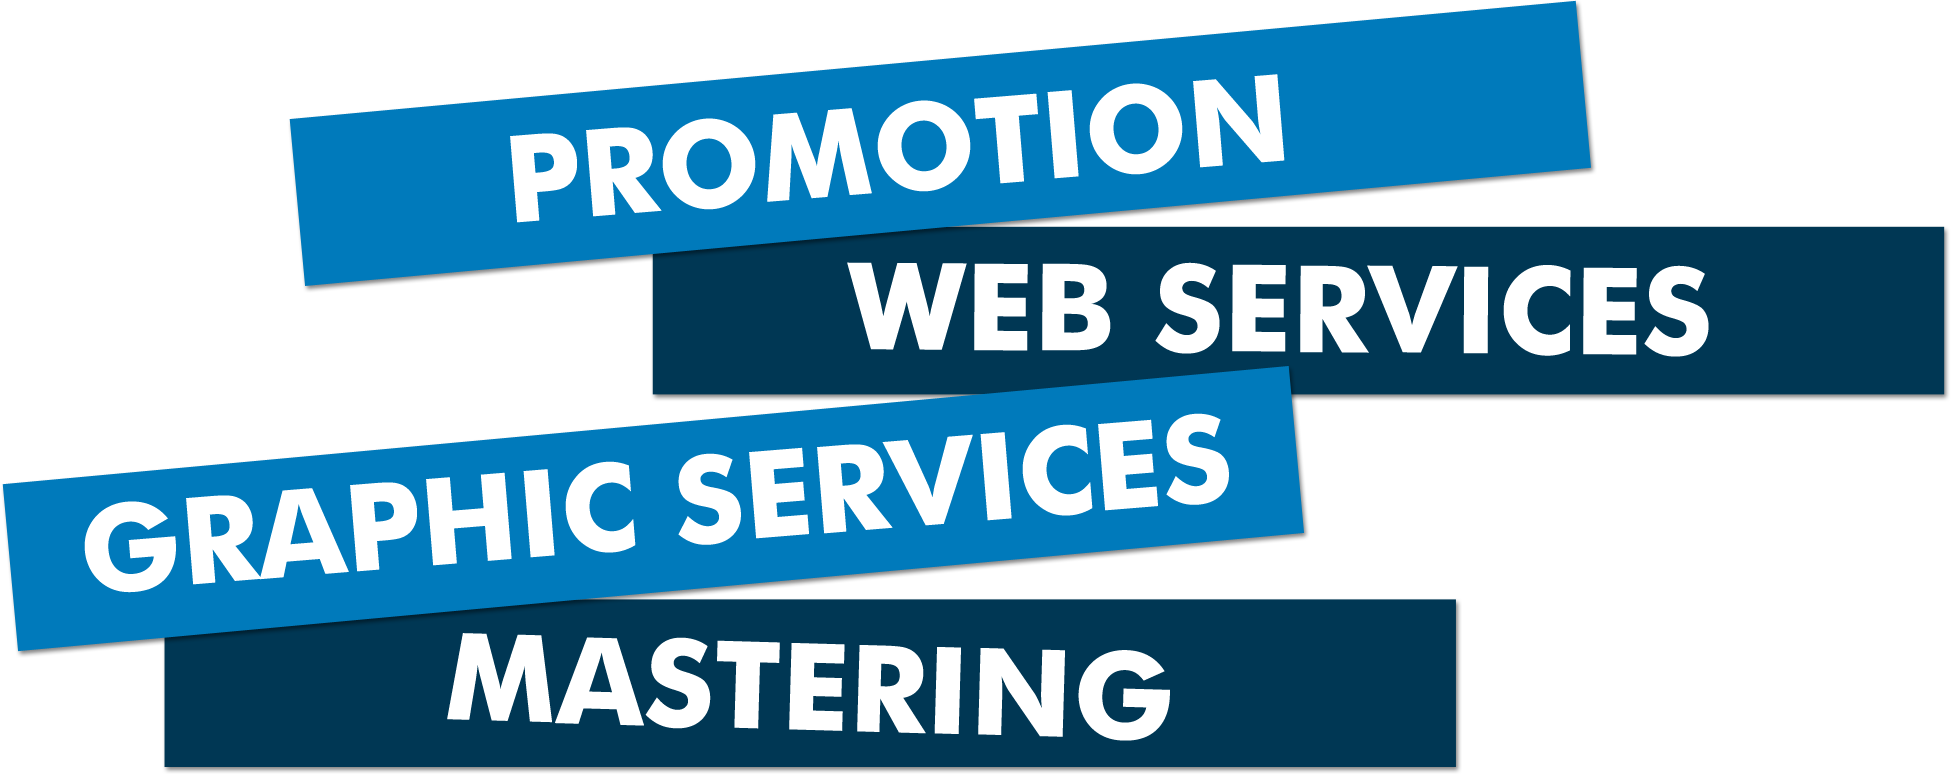 Music Promotion - Music Email Databases - Music Distribution - EDM Promotion - Djs Promotion - Record labels - Mastering - Web services - Mastering